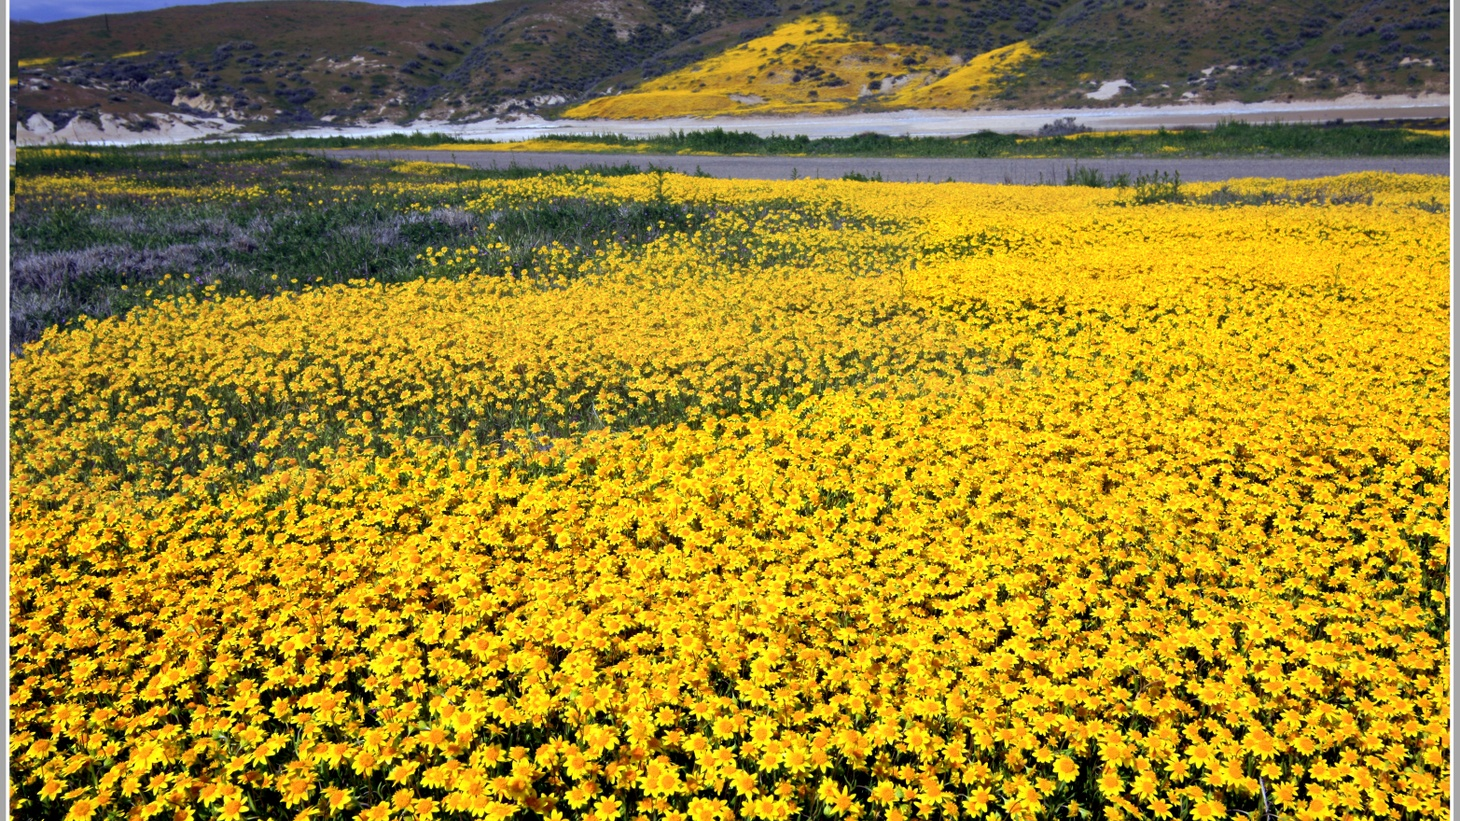 California goldfields (Lasthenia californica) in the Cuyama Valley. Photo credit: Denise Dewire, Courtesy of the Santa Barbara Botanic Garden